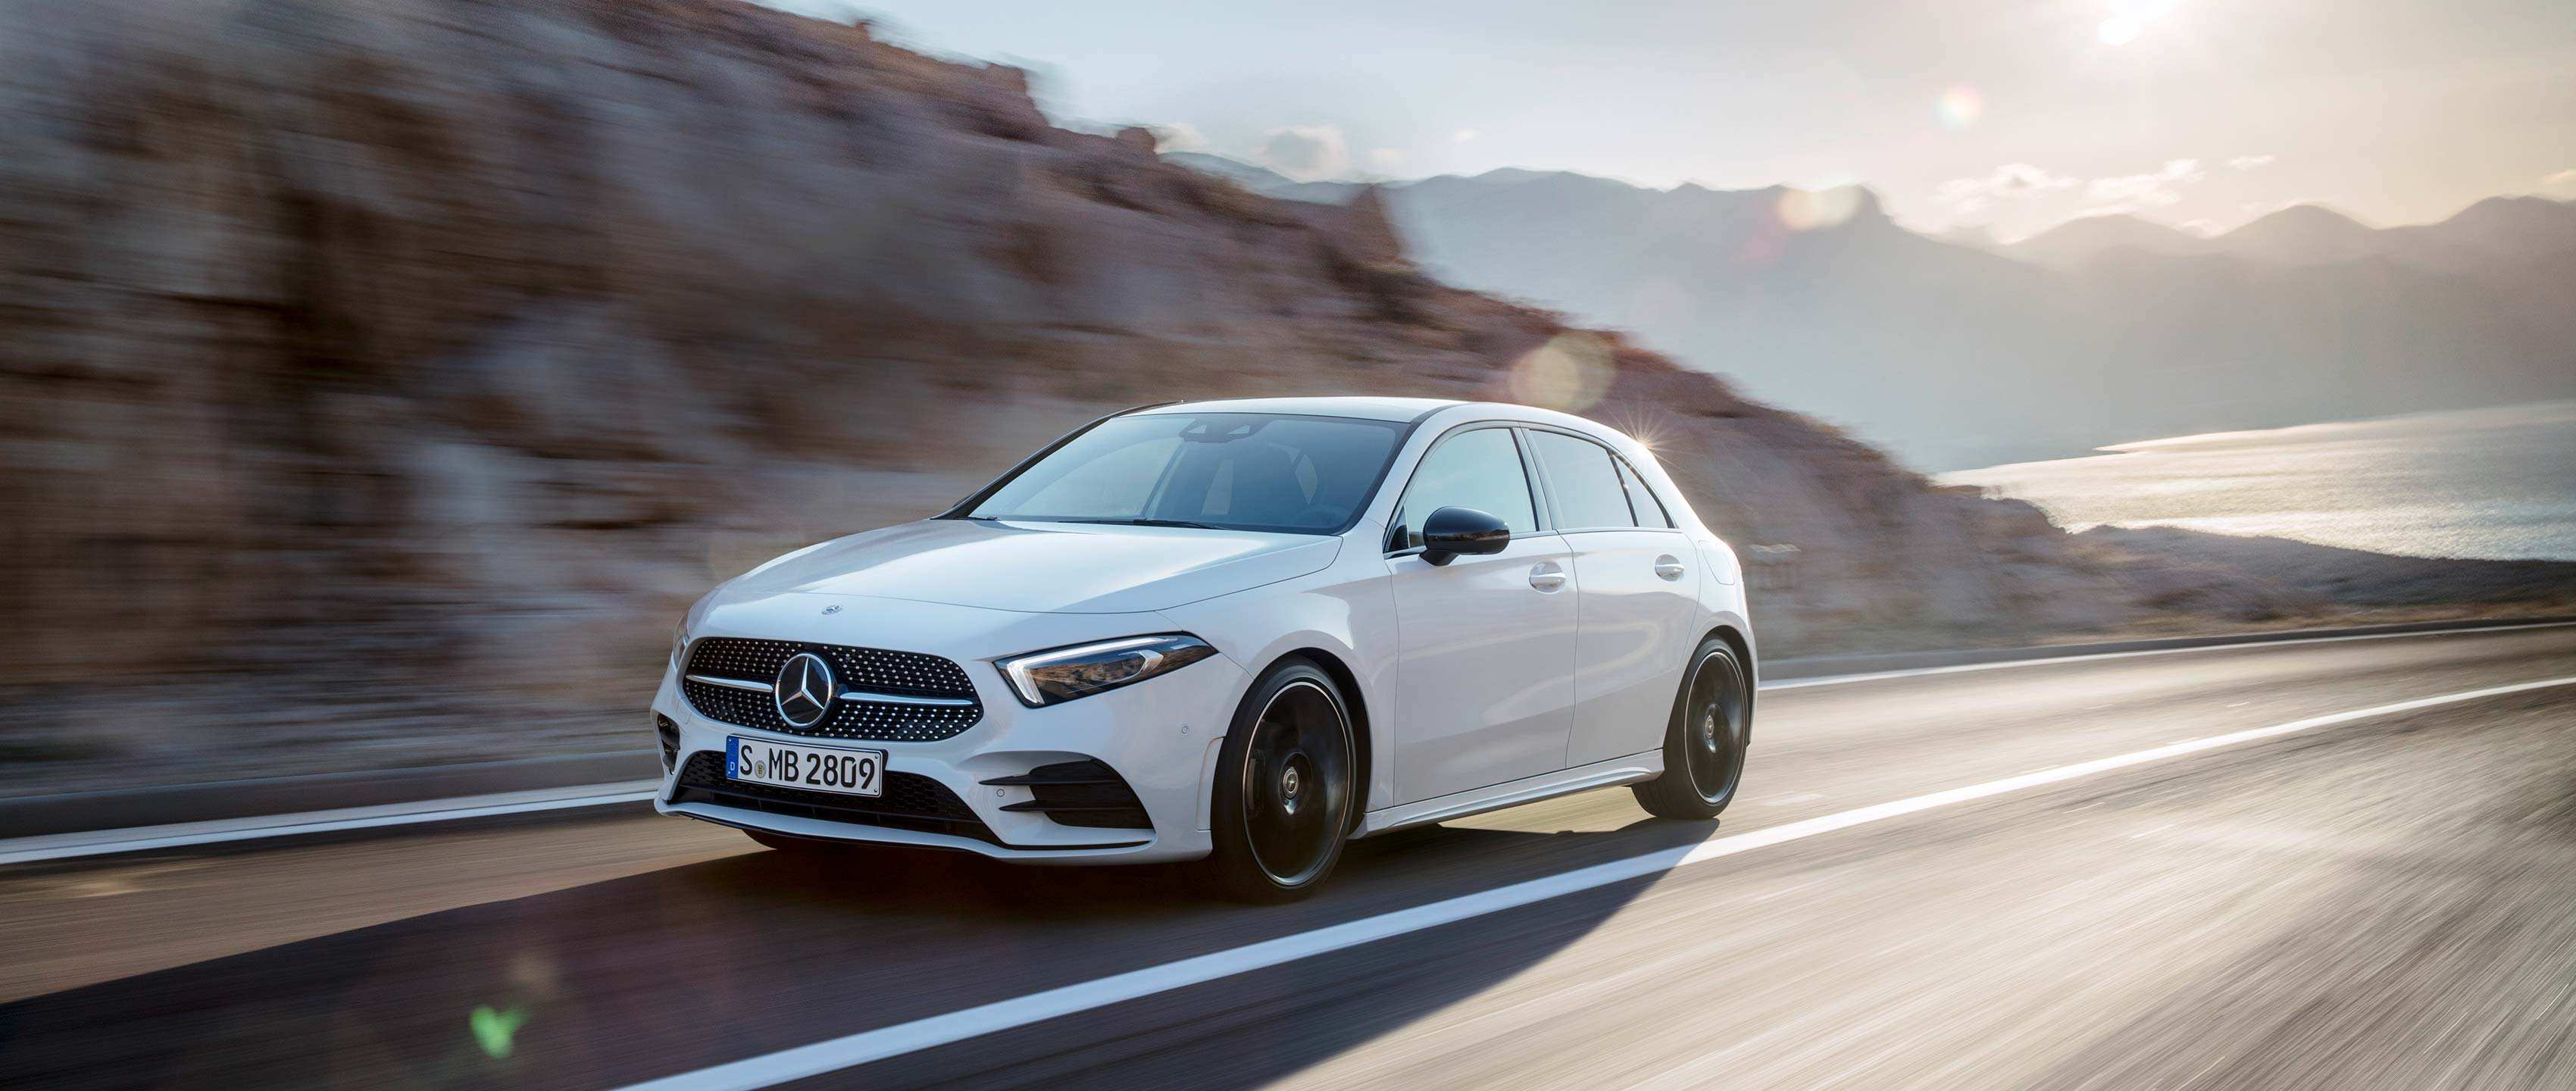 19 The Best Mercedes A200 Amg Line 2019 Price And Review